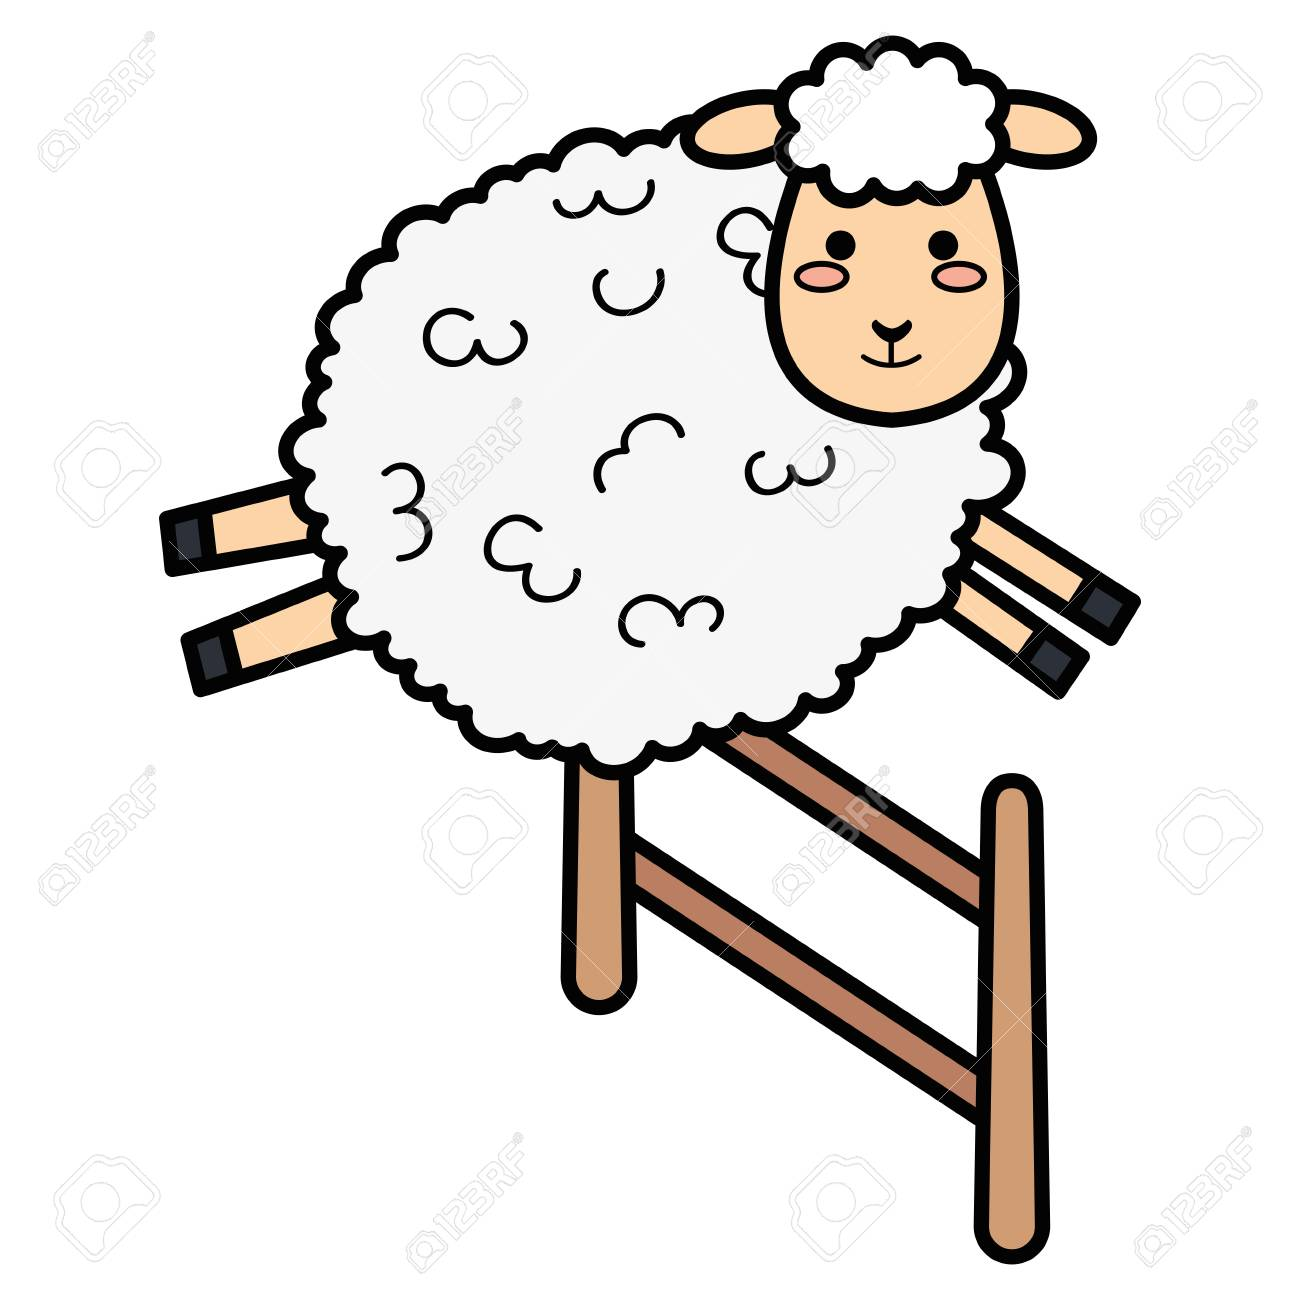 cute sheep jumping fence character icon vector illustration design.